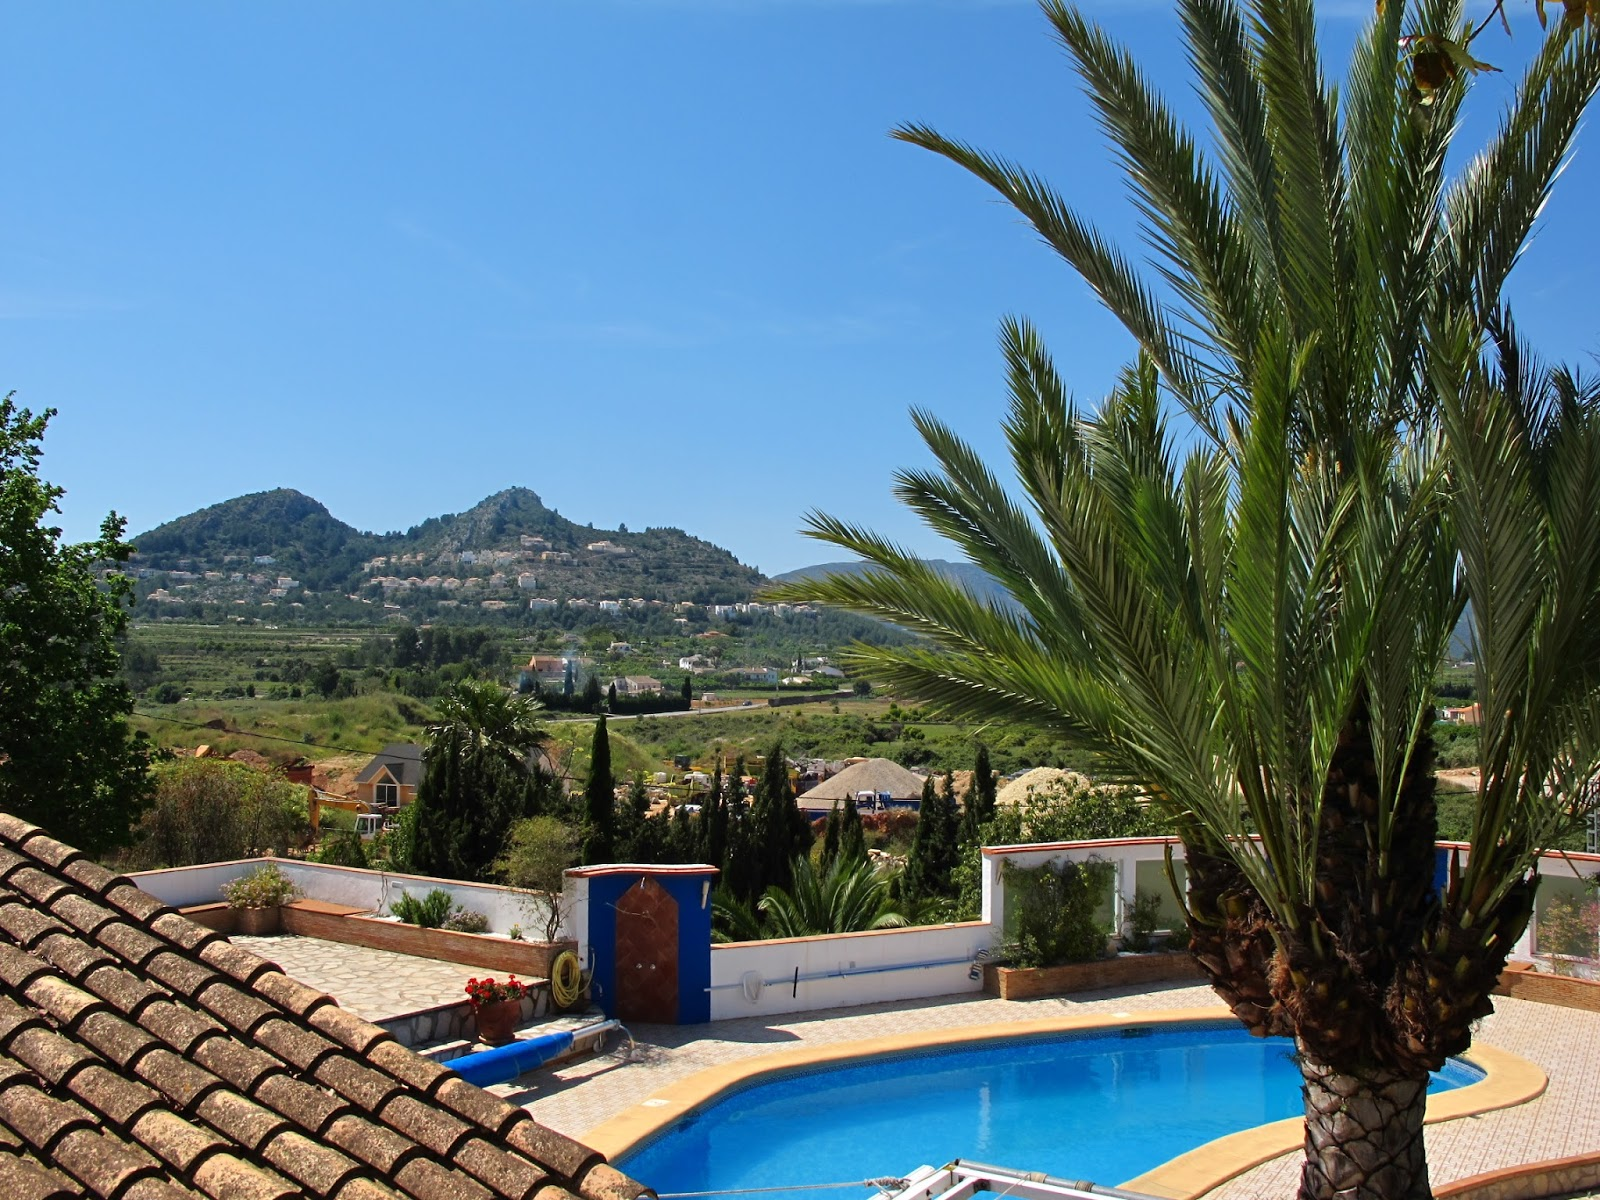 Holiday house with pool in Costa Brava in Lloret de Mar (Spain)